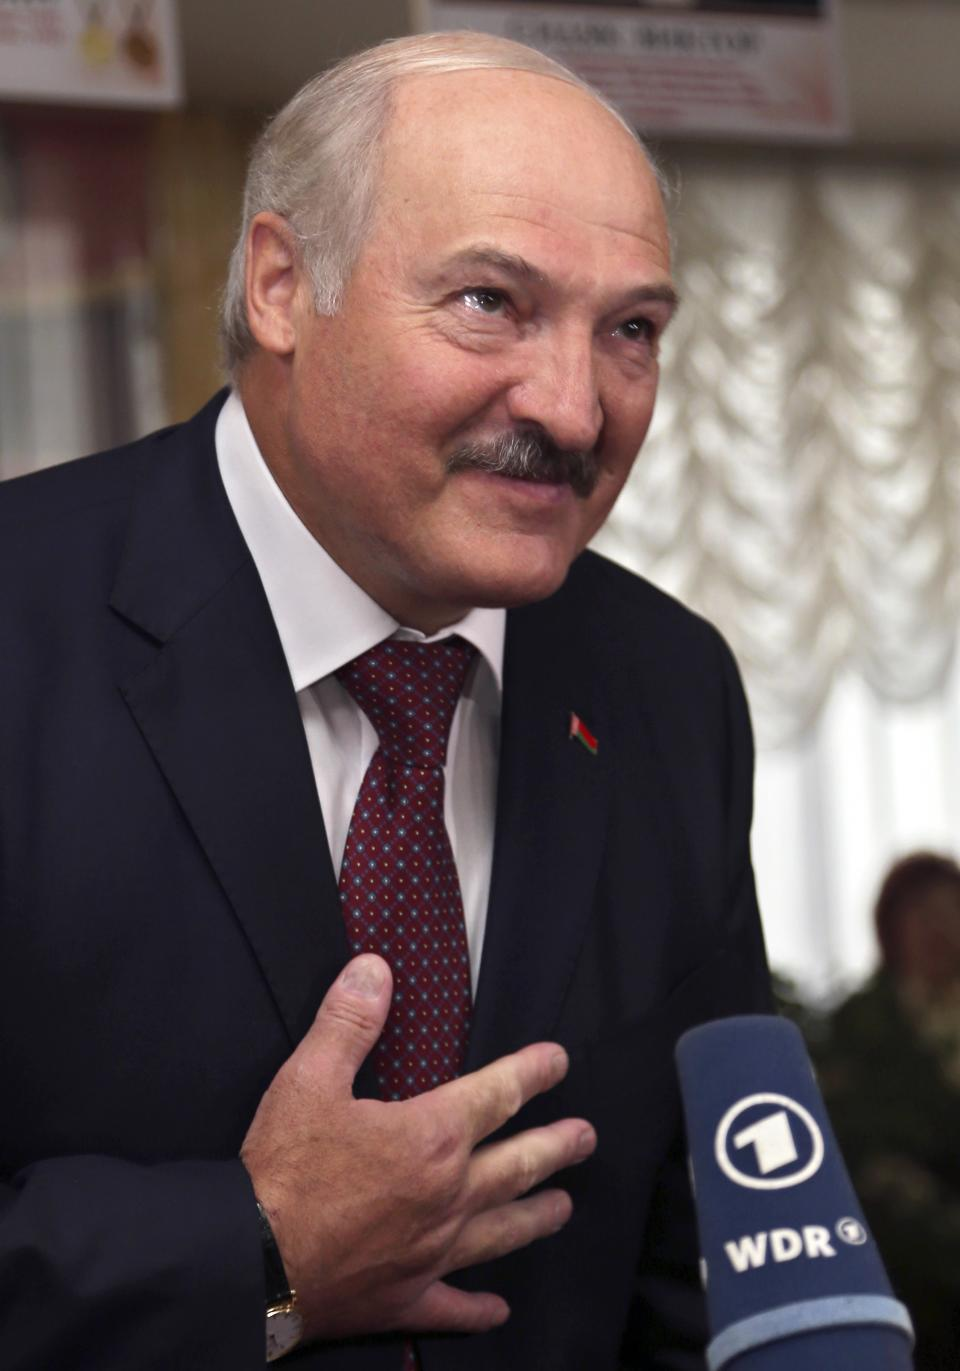 Belarusian President Alexander Lukashenko, at a polling station after voting during parliamentary elections in Minsk, Belarus, Sunday, Sept. 23, 2012. Belarus is holding parliamentary elections Sunday without the main opposition parties, which boycotted the vote to protest the detention of political prisoners and opportunities for election fraud. (AP Photo/Sergei Grits)